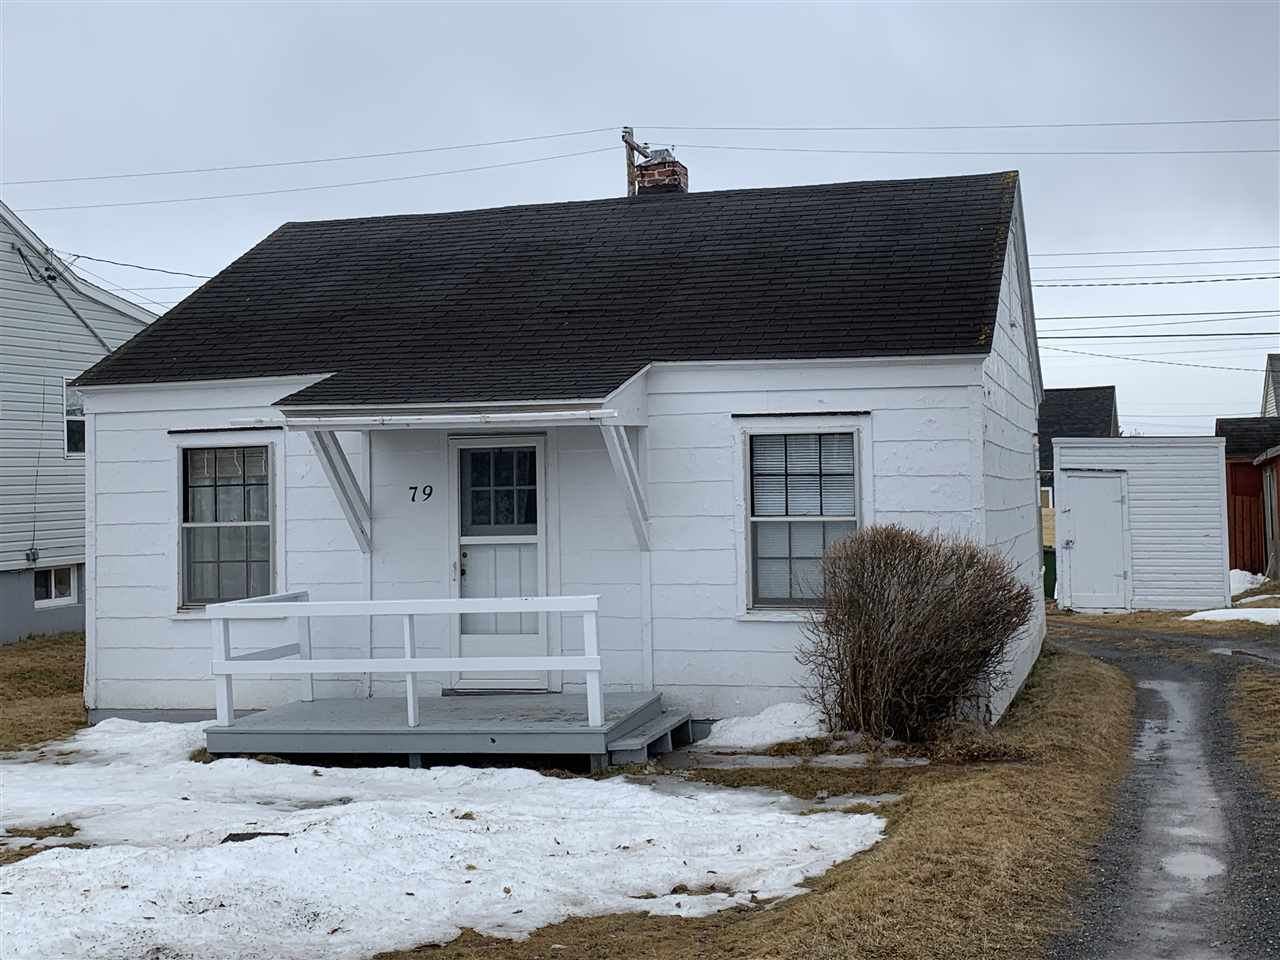 Main Photo: 79 Oak Street in Pictou: 107-Trenton,Westville,Pictou Residential for sale (Northern Region)  : MLS®# 202005258